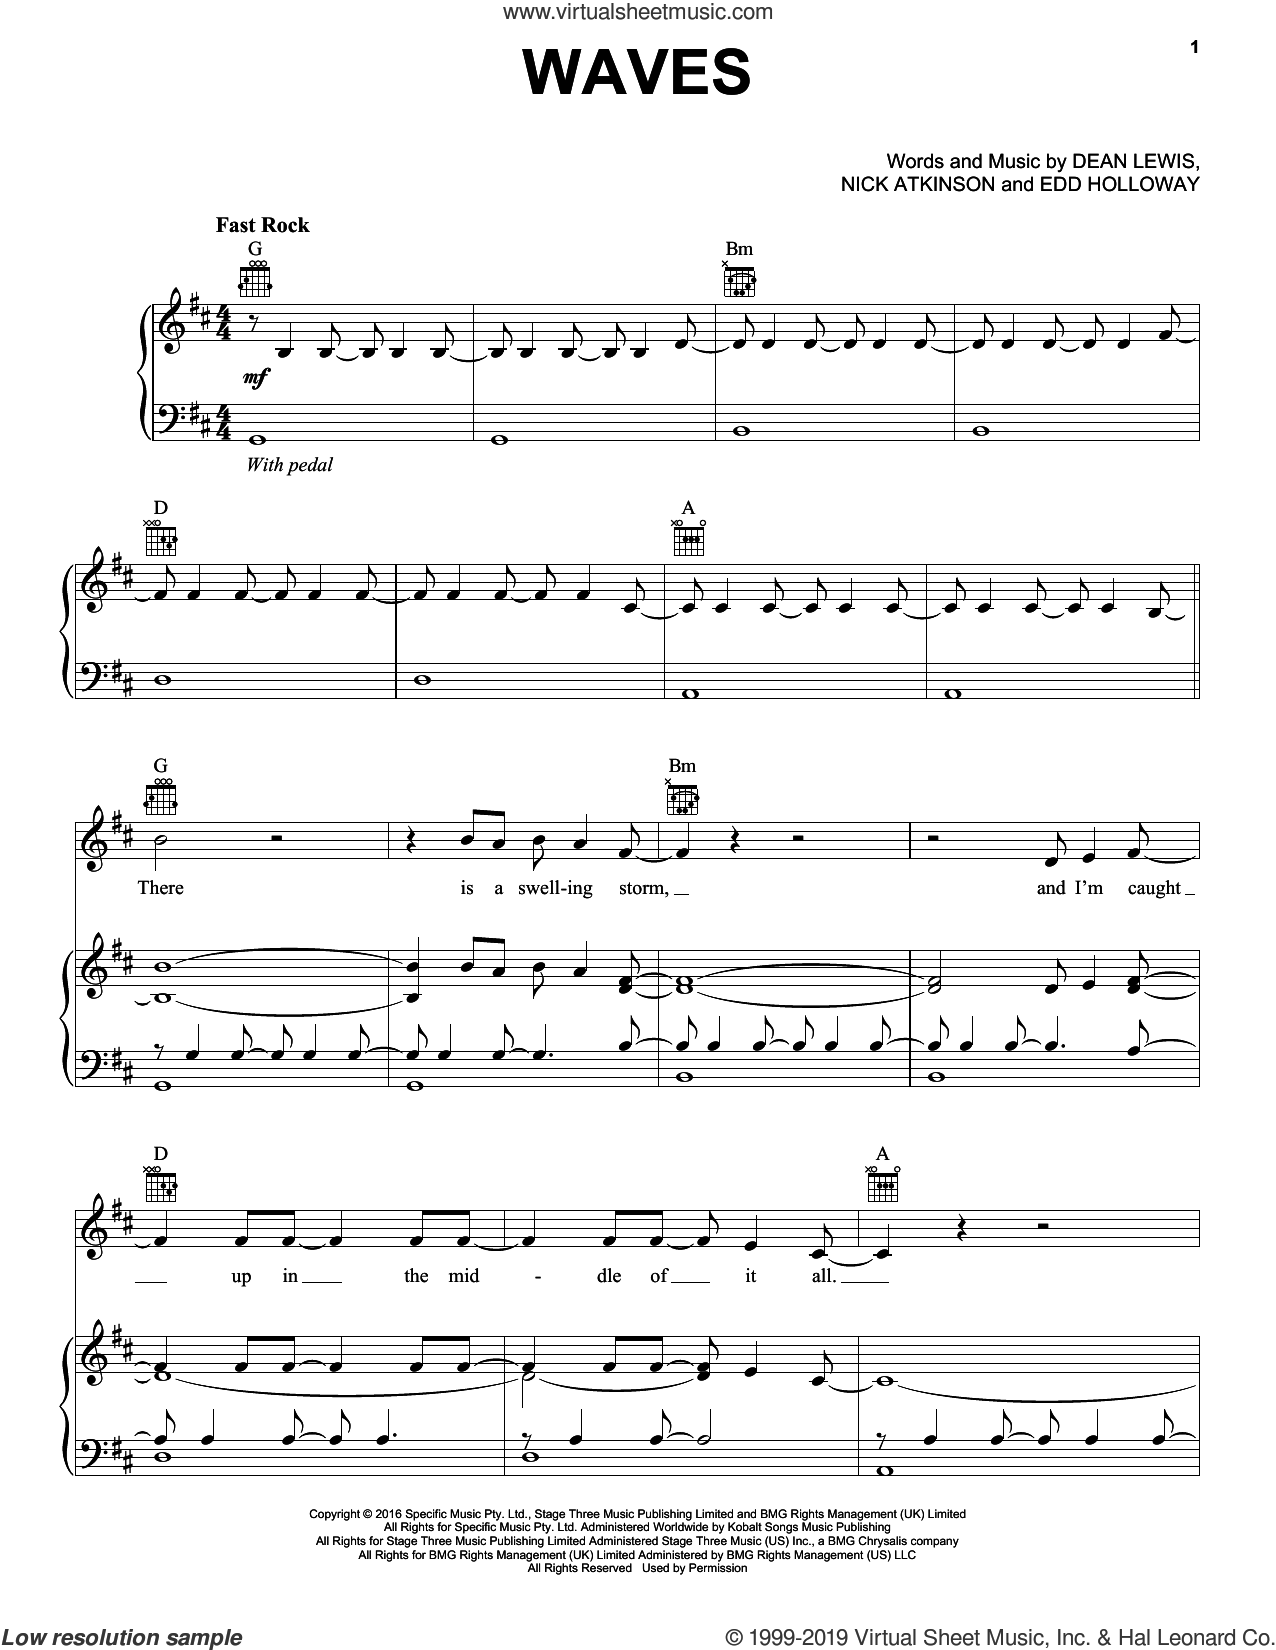 Waves sheet music for voice, piano or guitar by Dean Lewis, Edd Holloway and Nick Atkinson, intermediate skill level